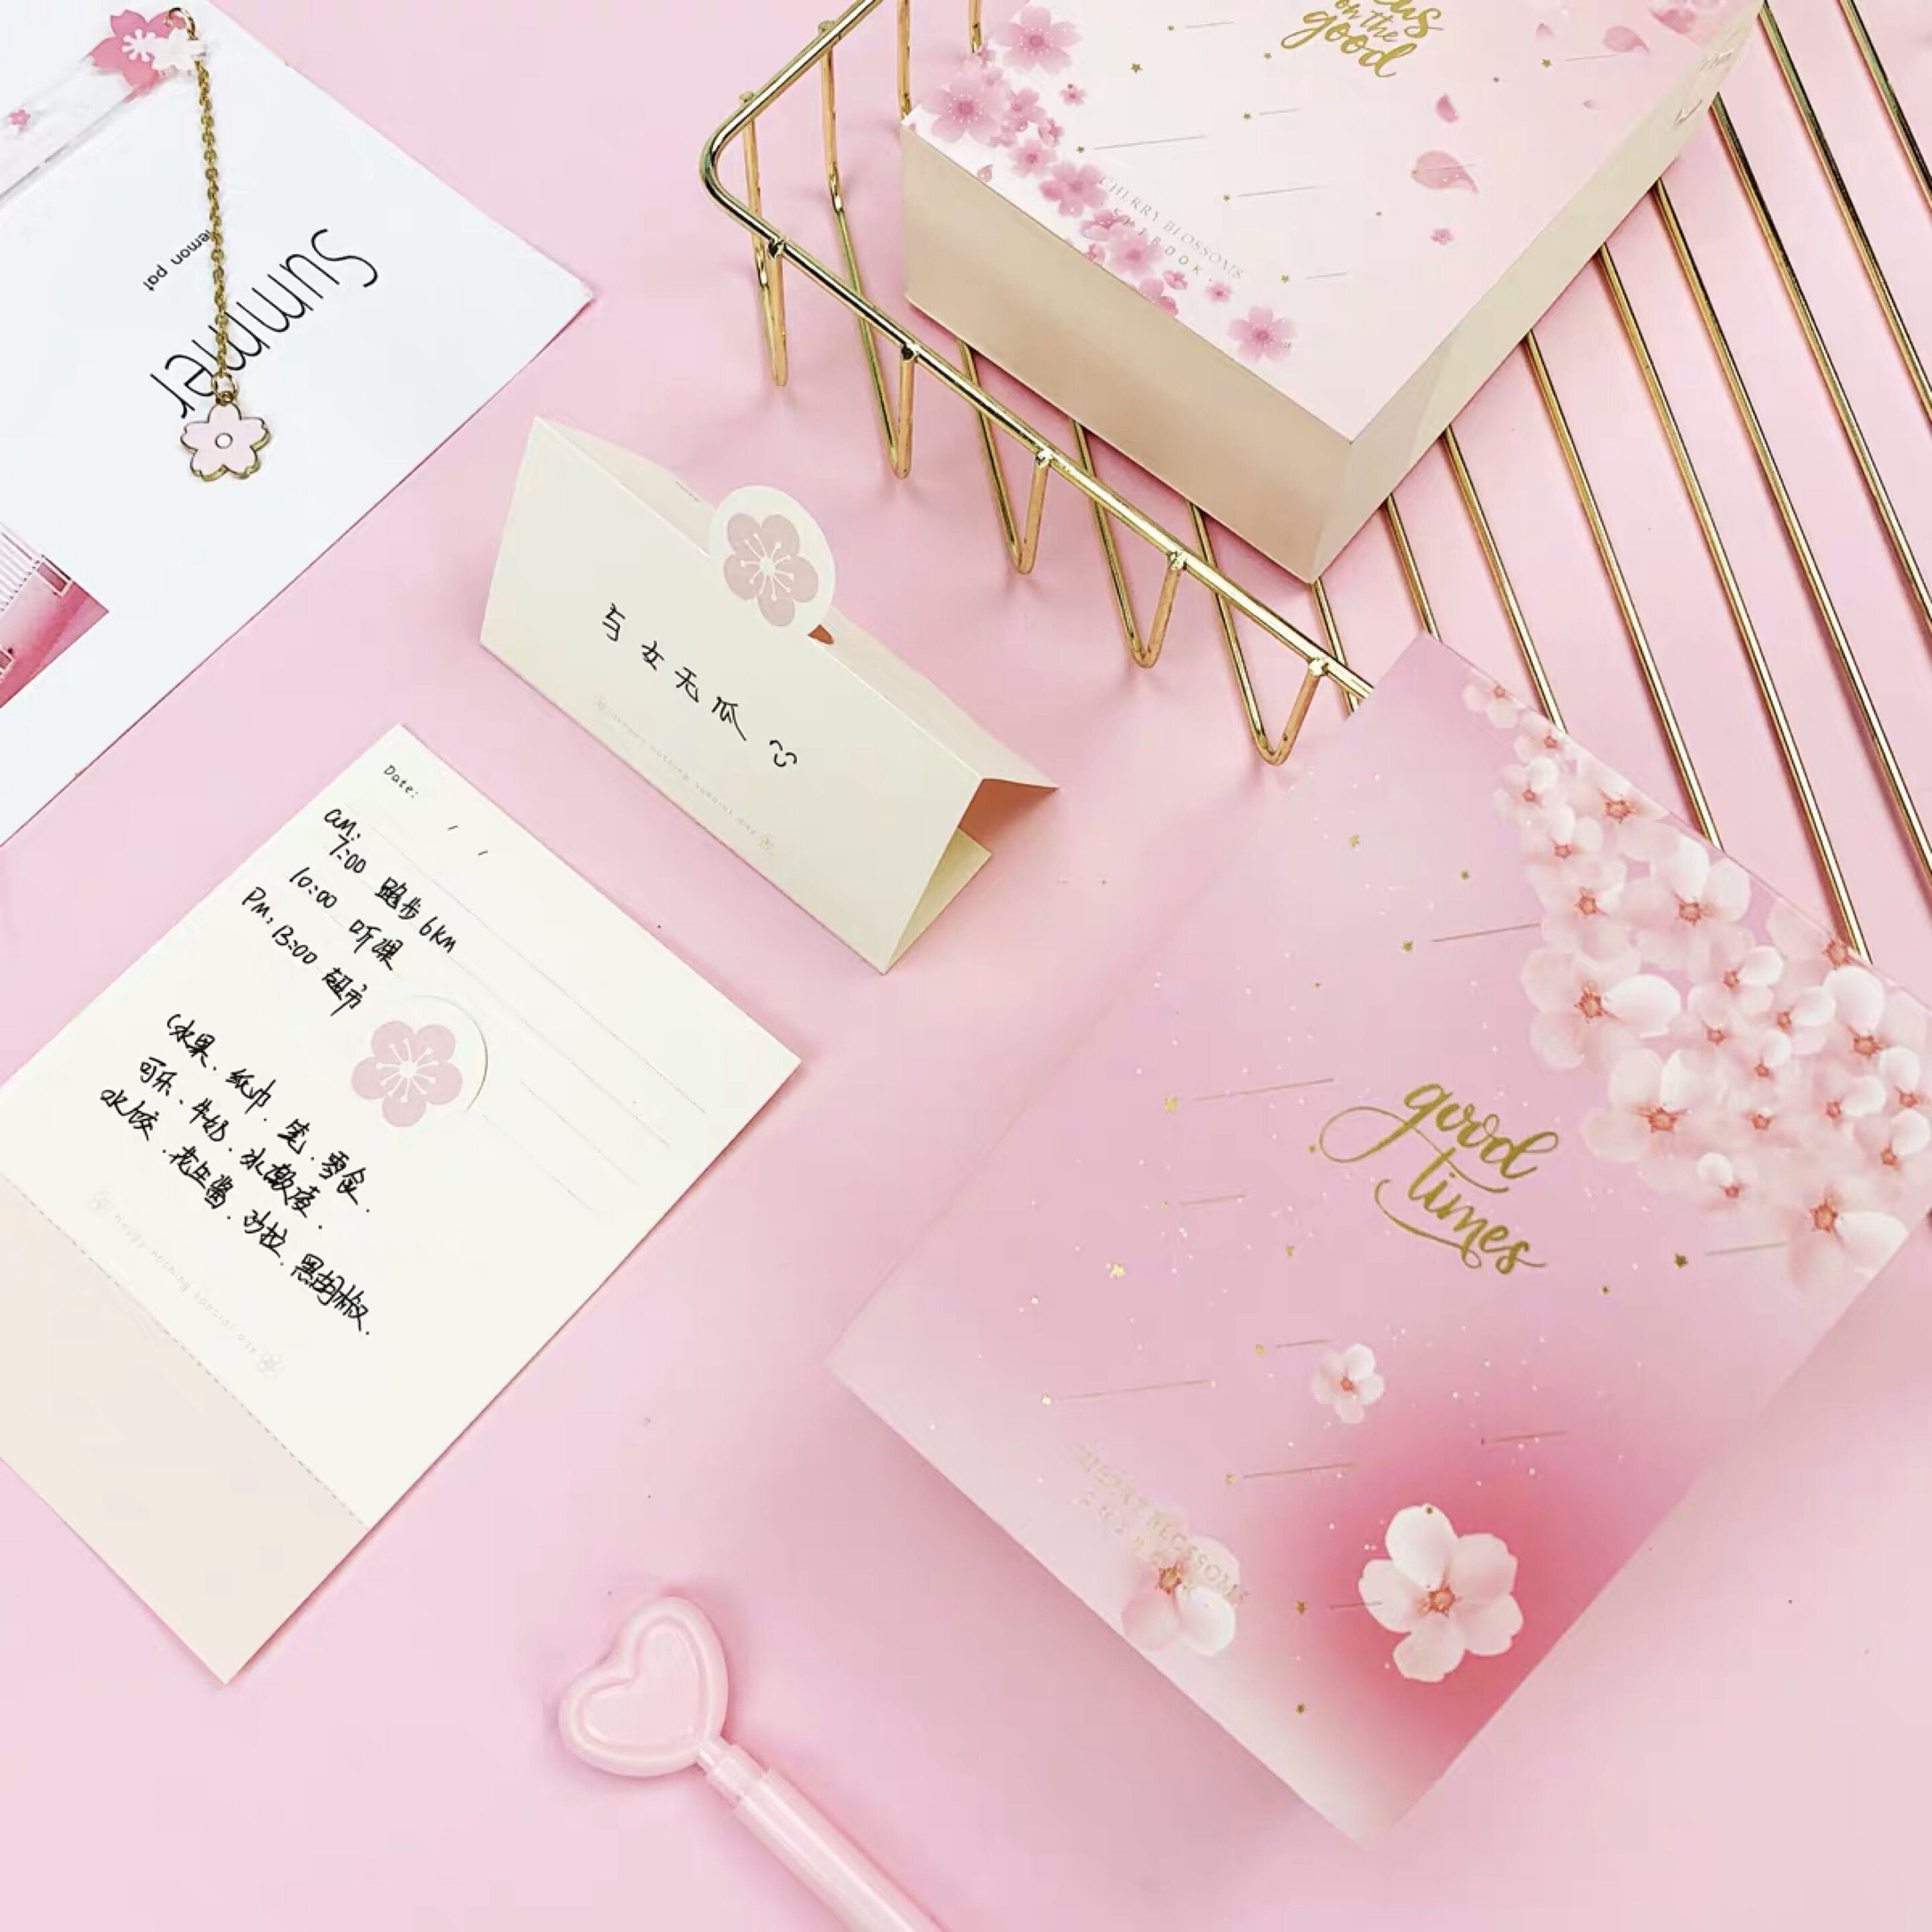 Kawaii Cherry Blossoms Cat 375 Sheets Memo Pads Paper To Do List Paperlaria Weekly Years Study Work Planner Notebook Stationery